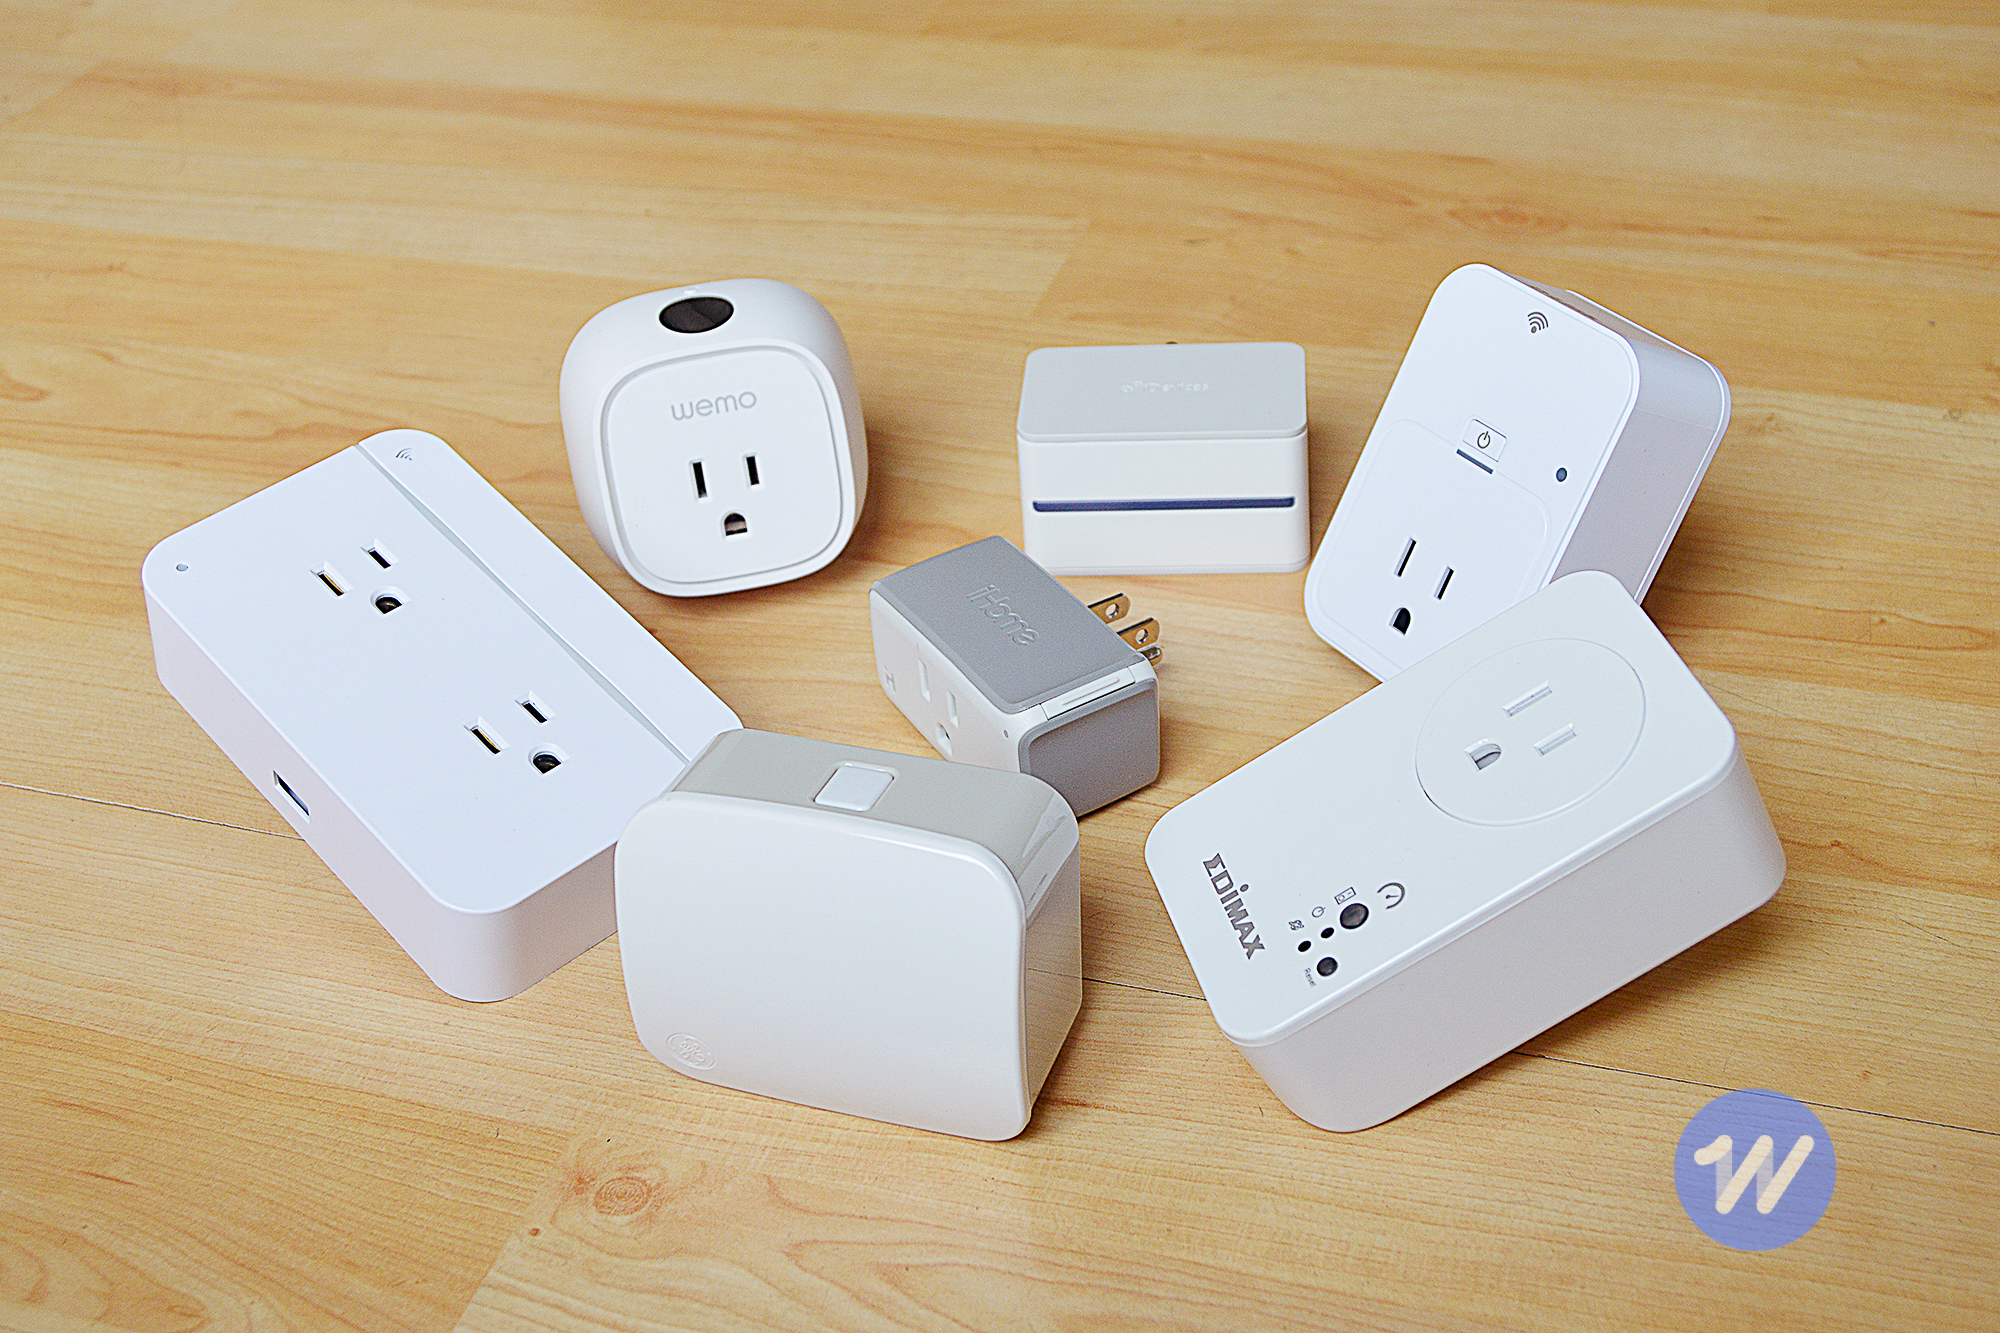 The Best Plug In Smart Outlet Adding A New Receptacle At Switch Switches Are An Easy Way To Add Remote Control Any Electronic Device Photo Rachel Cericola